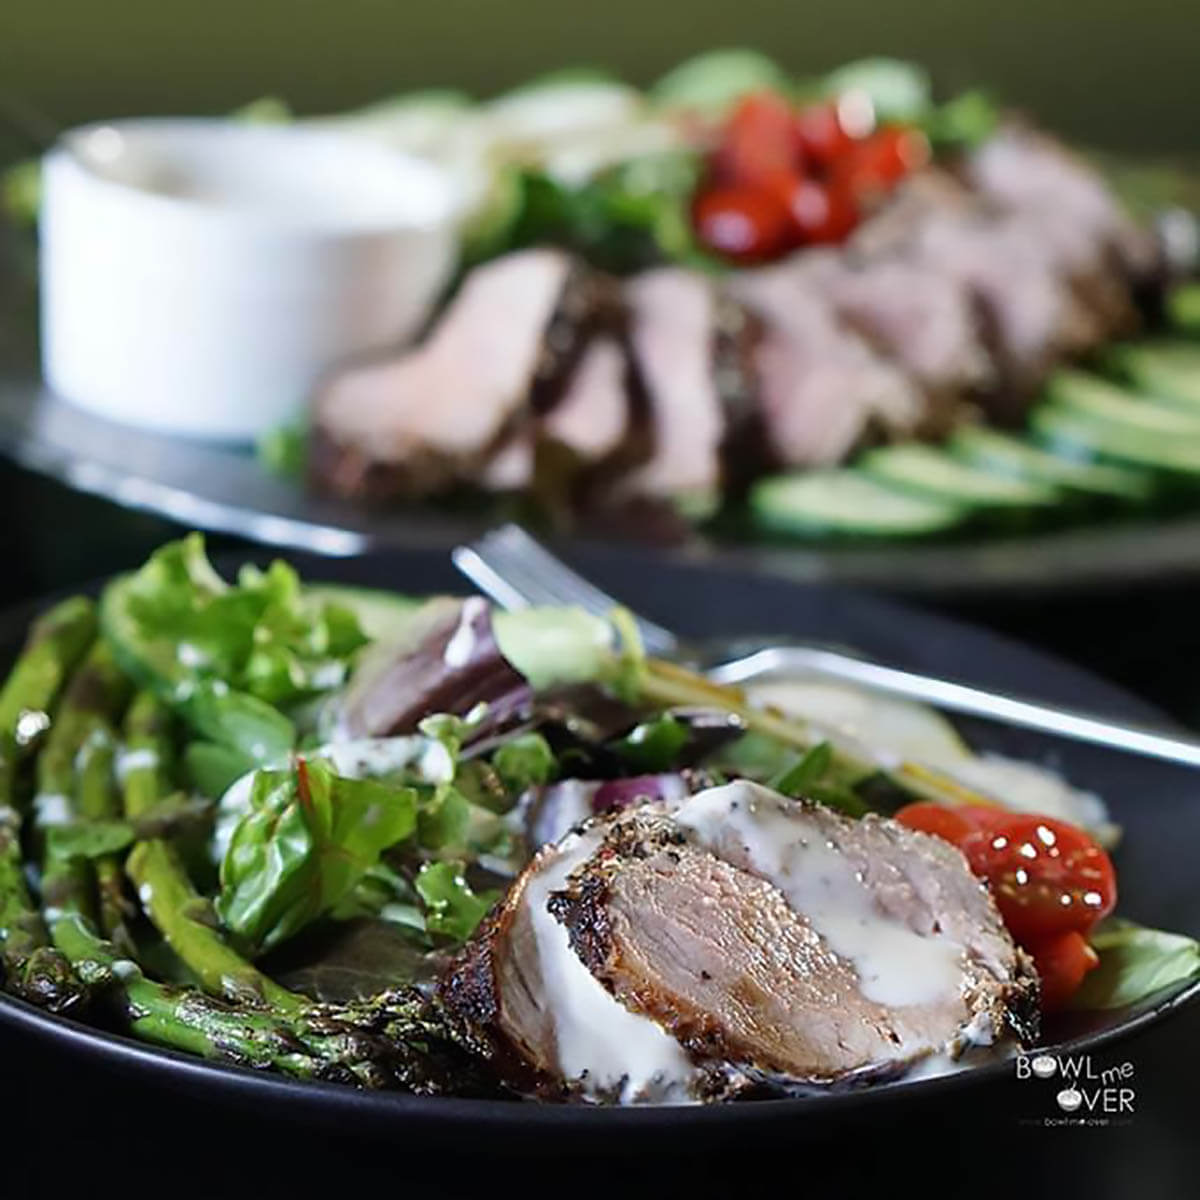 Grilled pork tenderloin on bed of lettuce topped with creamy dressing.